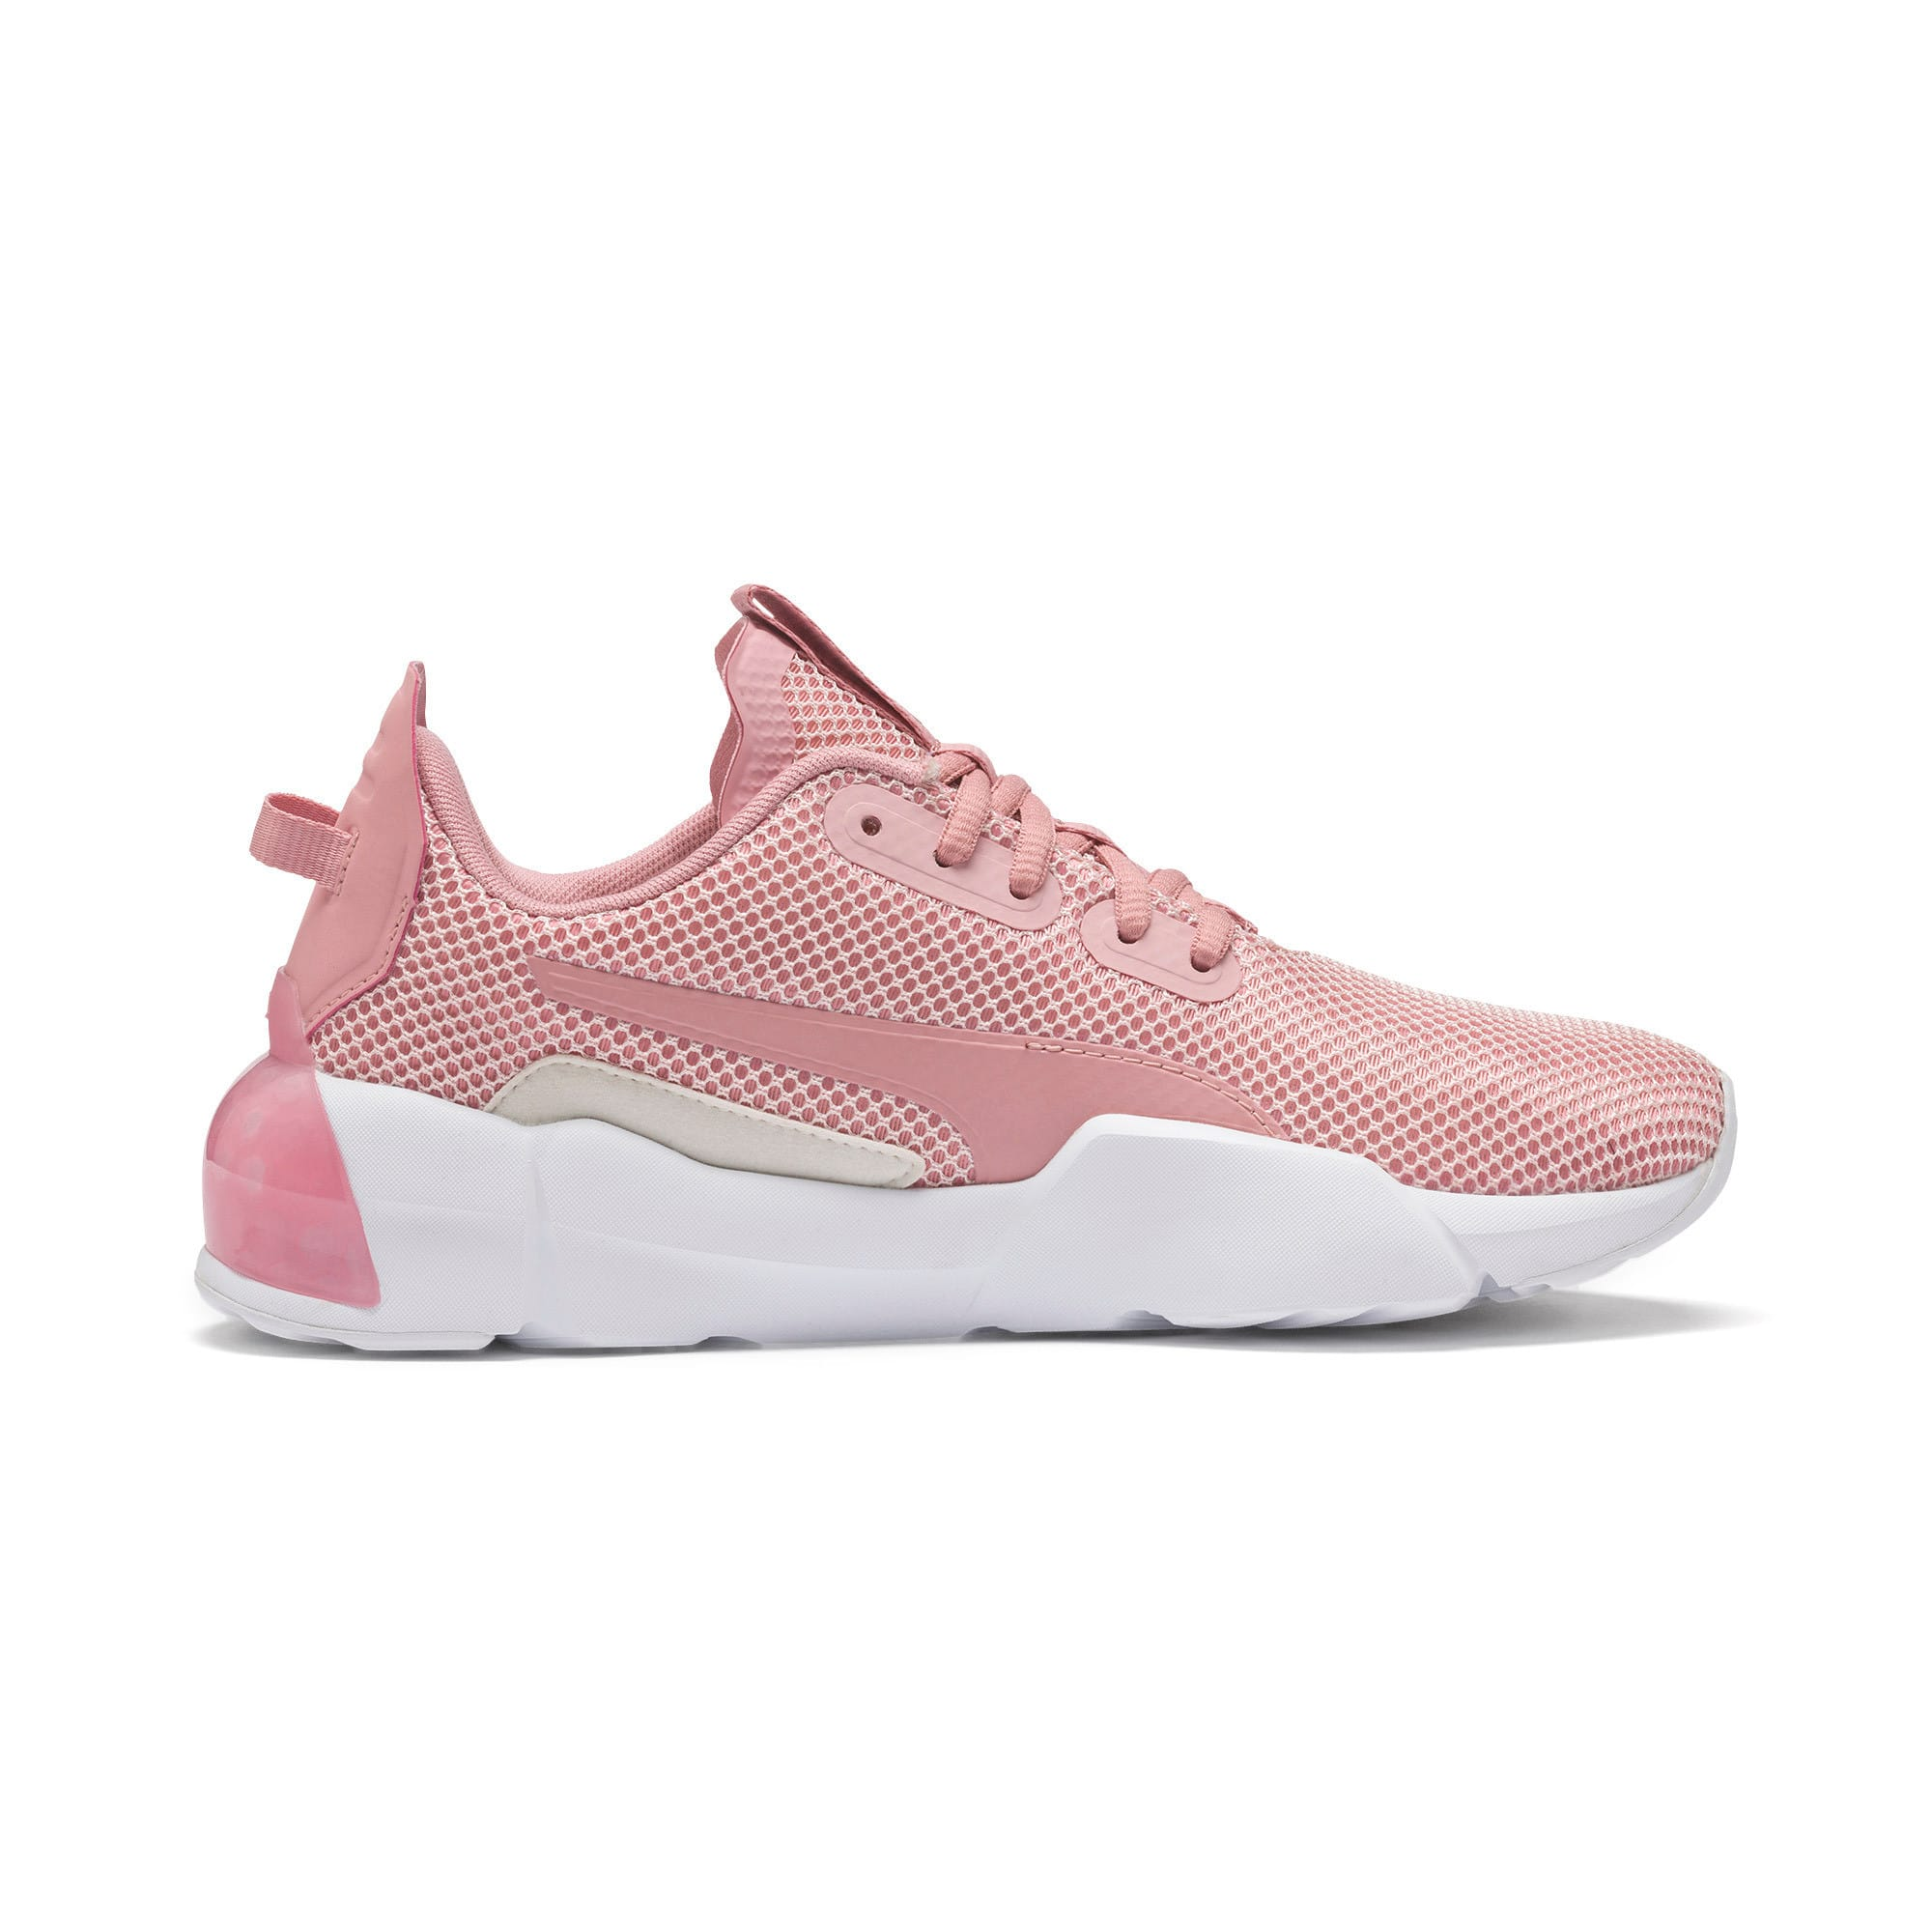 Thumbnail 7 of CELL Phase Women's Trainers, Bridal Rose-Pastel Parchment, medium-IND